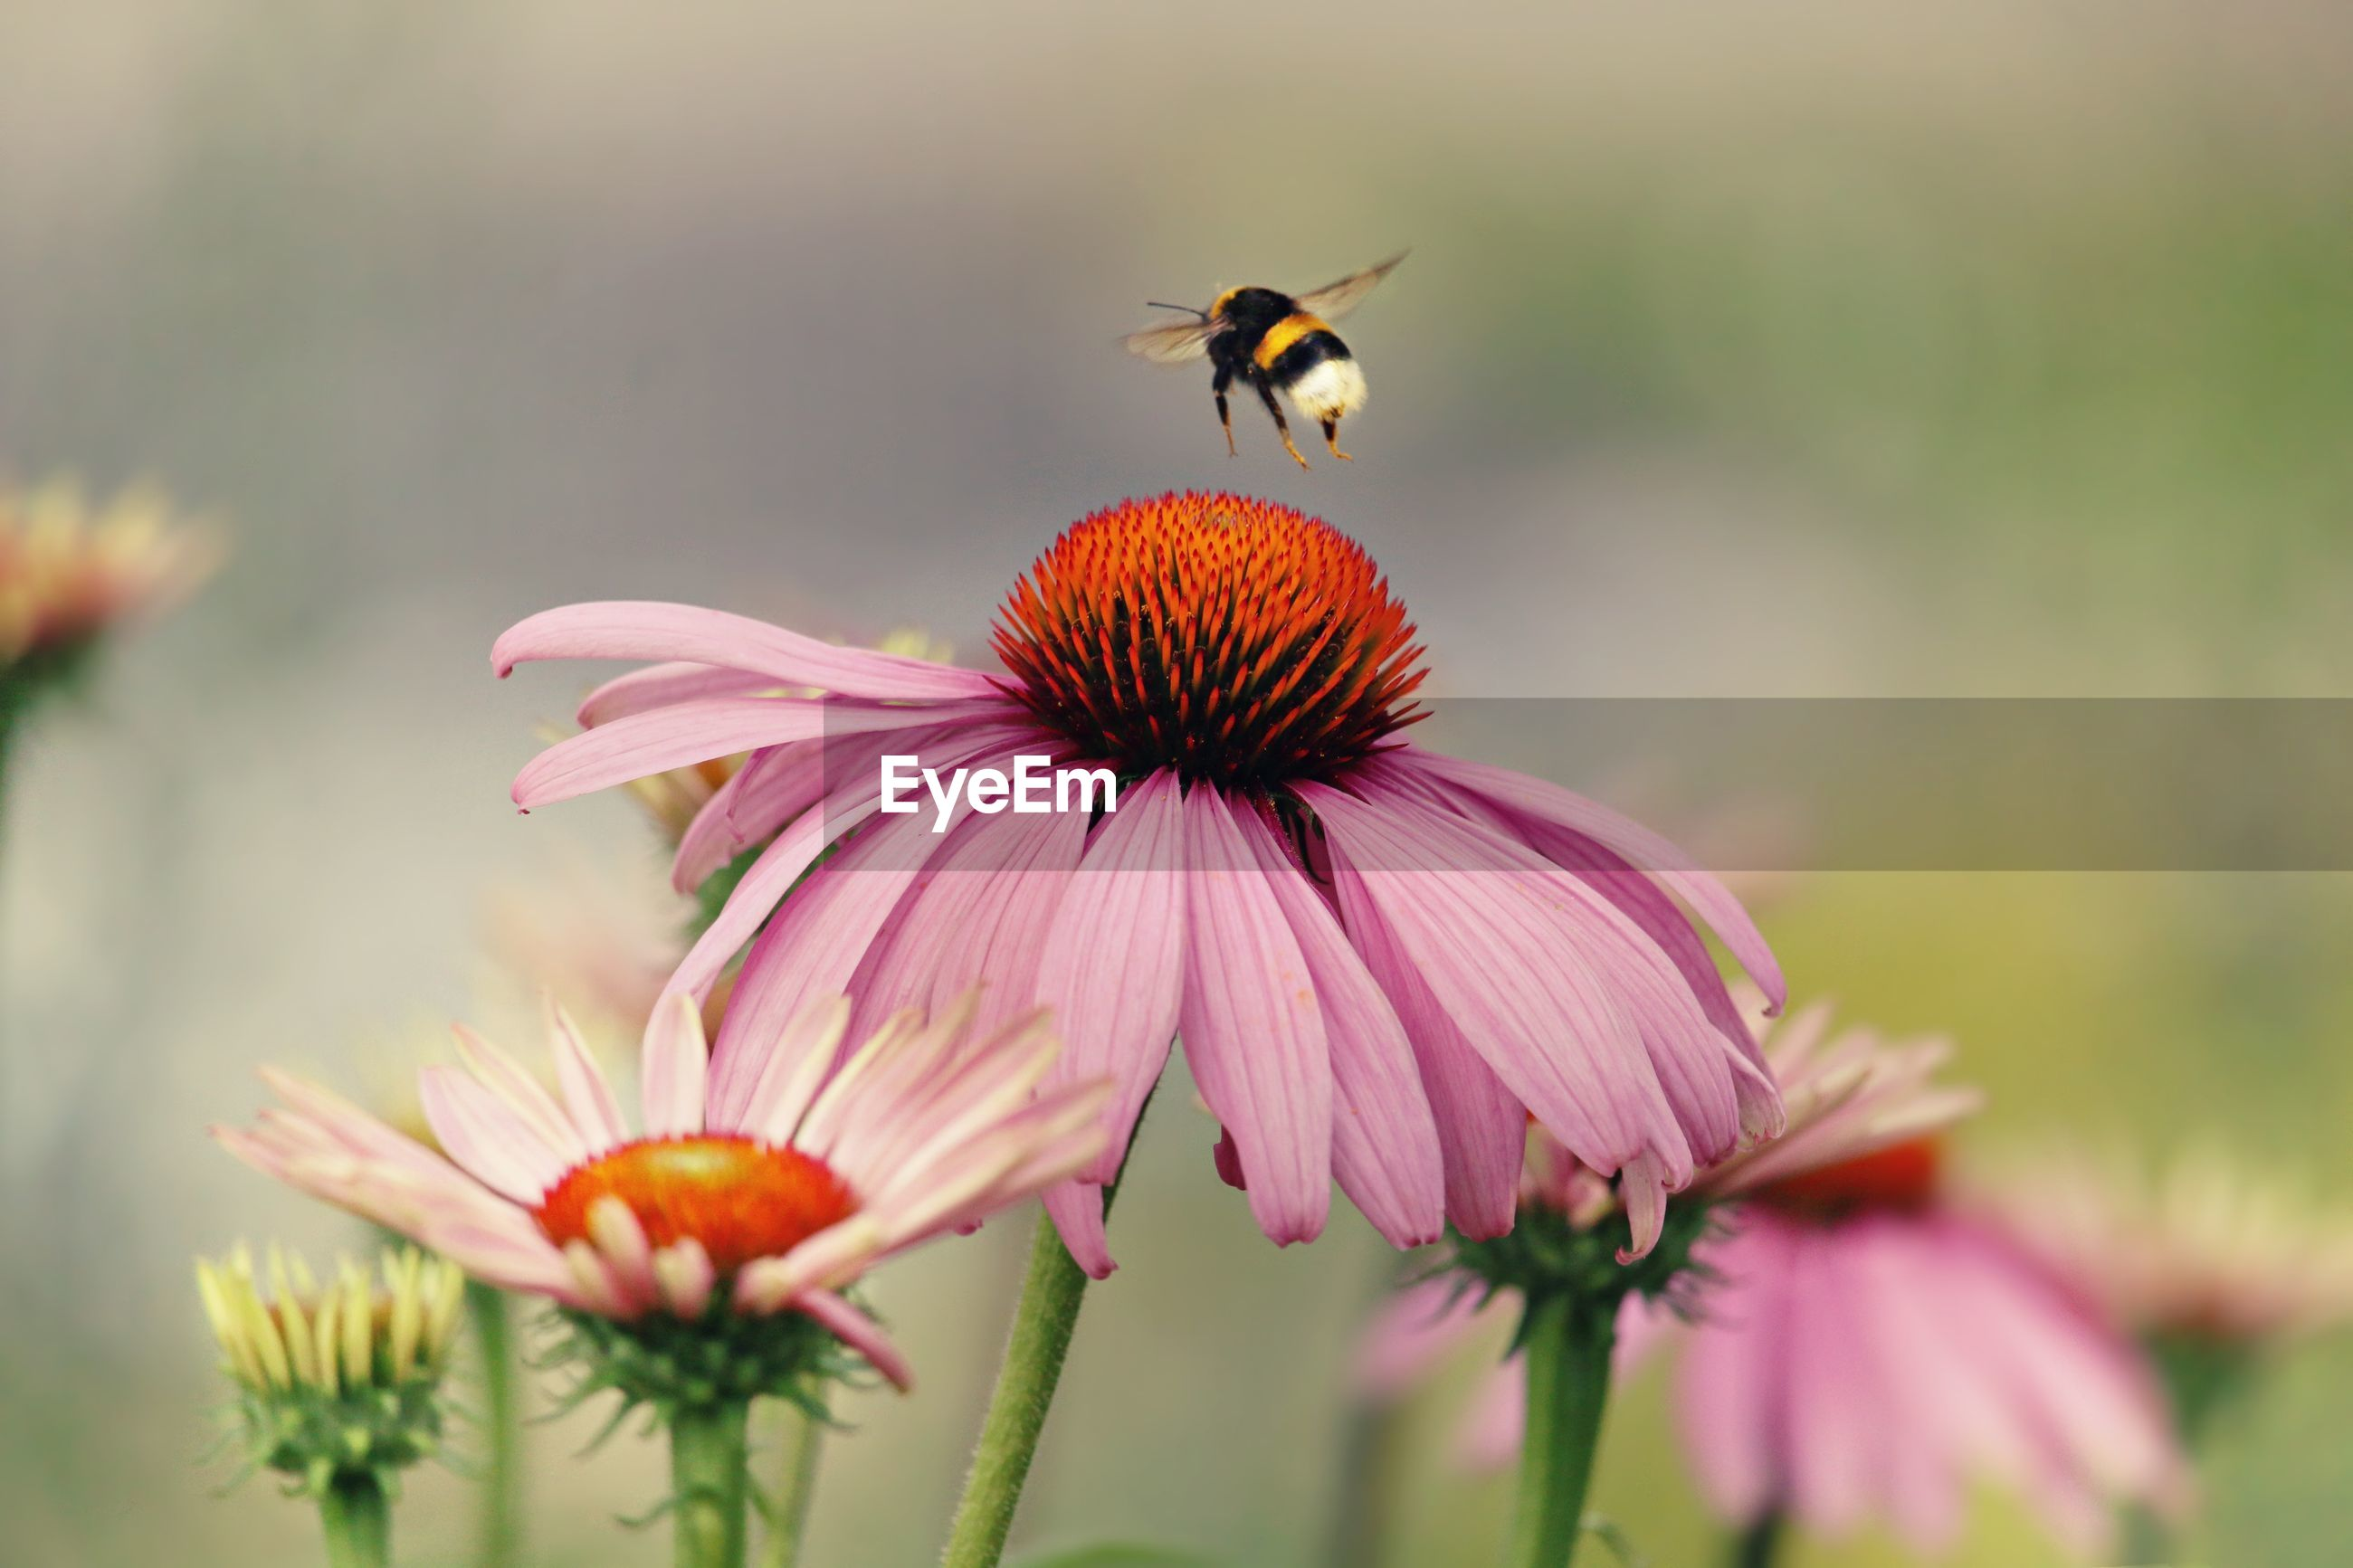 Bee hovering over eastern purple coneflower